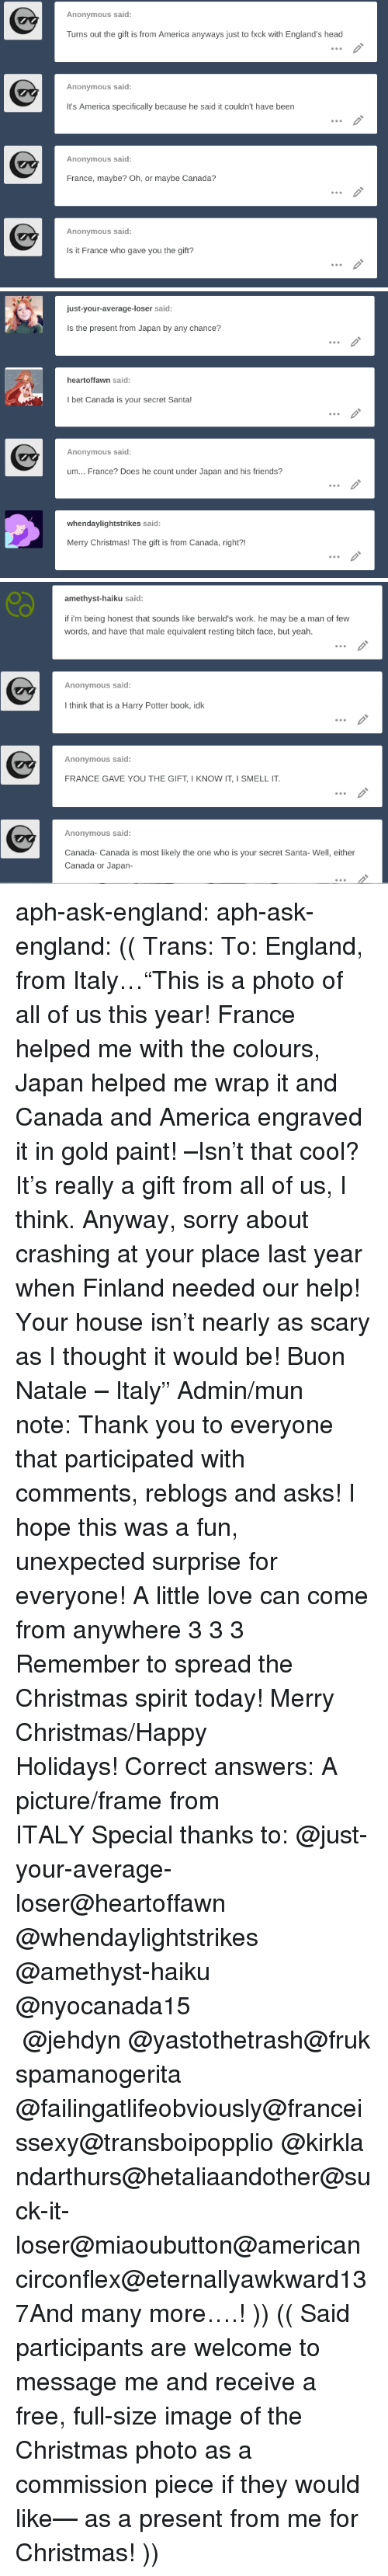 """America, Bitch, and Christmas: Anonymous said:  Turns out the gift is from America anyways just to fxck with England's head  Anonymous said:  It's America specifically because he said it couldn't have been  Anonymous said:  France, maybe? Oh, or maybe Canada?  Anonymous said:  Is it France who gave you the gift?   just-your-average-loser said:  Is the present from Japan by any chance?  heartoffawn said:  I bet Canada is your secret Santa!  Anonymous said:  um... France? Does he count under Japan and his friends?  whendaylightstrikes said  Merry Christmas! The gift is from Canada, right?!   amethyst-haiku said:  if i'm being honest that sounds like berwald's work. he may be a man of few  words, and have that male equivalent resting bitch face, but yeah.  Anonymous said  I think that is a Harry Potter book, idk  Anonymous said:  FRANCE GAVE YOU THE GIFT, I KNOW IT, I SMELL IT  Anonymous said:  Canada- Canada is most likely the one who is your secret Santa- Well, either  Canada or Japan- aph-ask-england:  aph-ask-england: (( Trans:To: England, from Italy…""""This is a photo of all of us this year! France helped me with the colours, Japan helped me wrap it and Canada and America engraved it in gold paint! –Isn't that cool? It's really a gift from all of us, I think. Anyway, sorry about crashing at your place last year when Finland needed our help! Your house isn't nearly as scary as I thought it would be!Buon Natale – Italy""""Admin/mun note:Thank you to everyone that participated with comments, reblogs and asks! I hope this was a fun, unexpected surprise for everyone! A little love can come from anywhere 3 3 3 Remember to spread the Christmas spirit today! Merry Christmas/Happy Holidays!Correct answers: A picture/frame from ITALYSpecial thanks to:@just-your-average-loser@heartoffawn @whendaylightstrikes @amethyst-haiku @nyocanada15 @jehdyn@yastothetrash@frukspamanogerita @failingatlifeobviously@franceissexy@transboipopplio@kirklandarthurs@hetaliaandother@suck-it-loser@miaoub"""